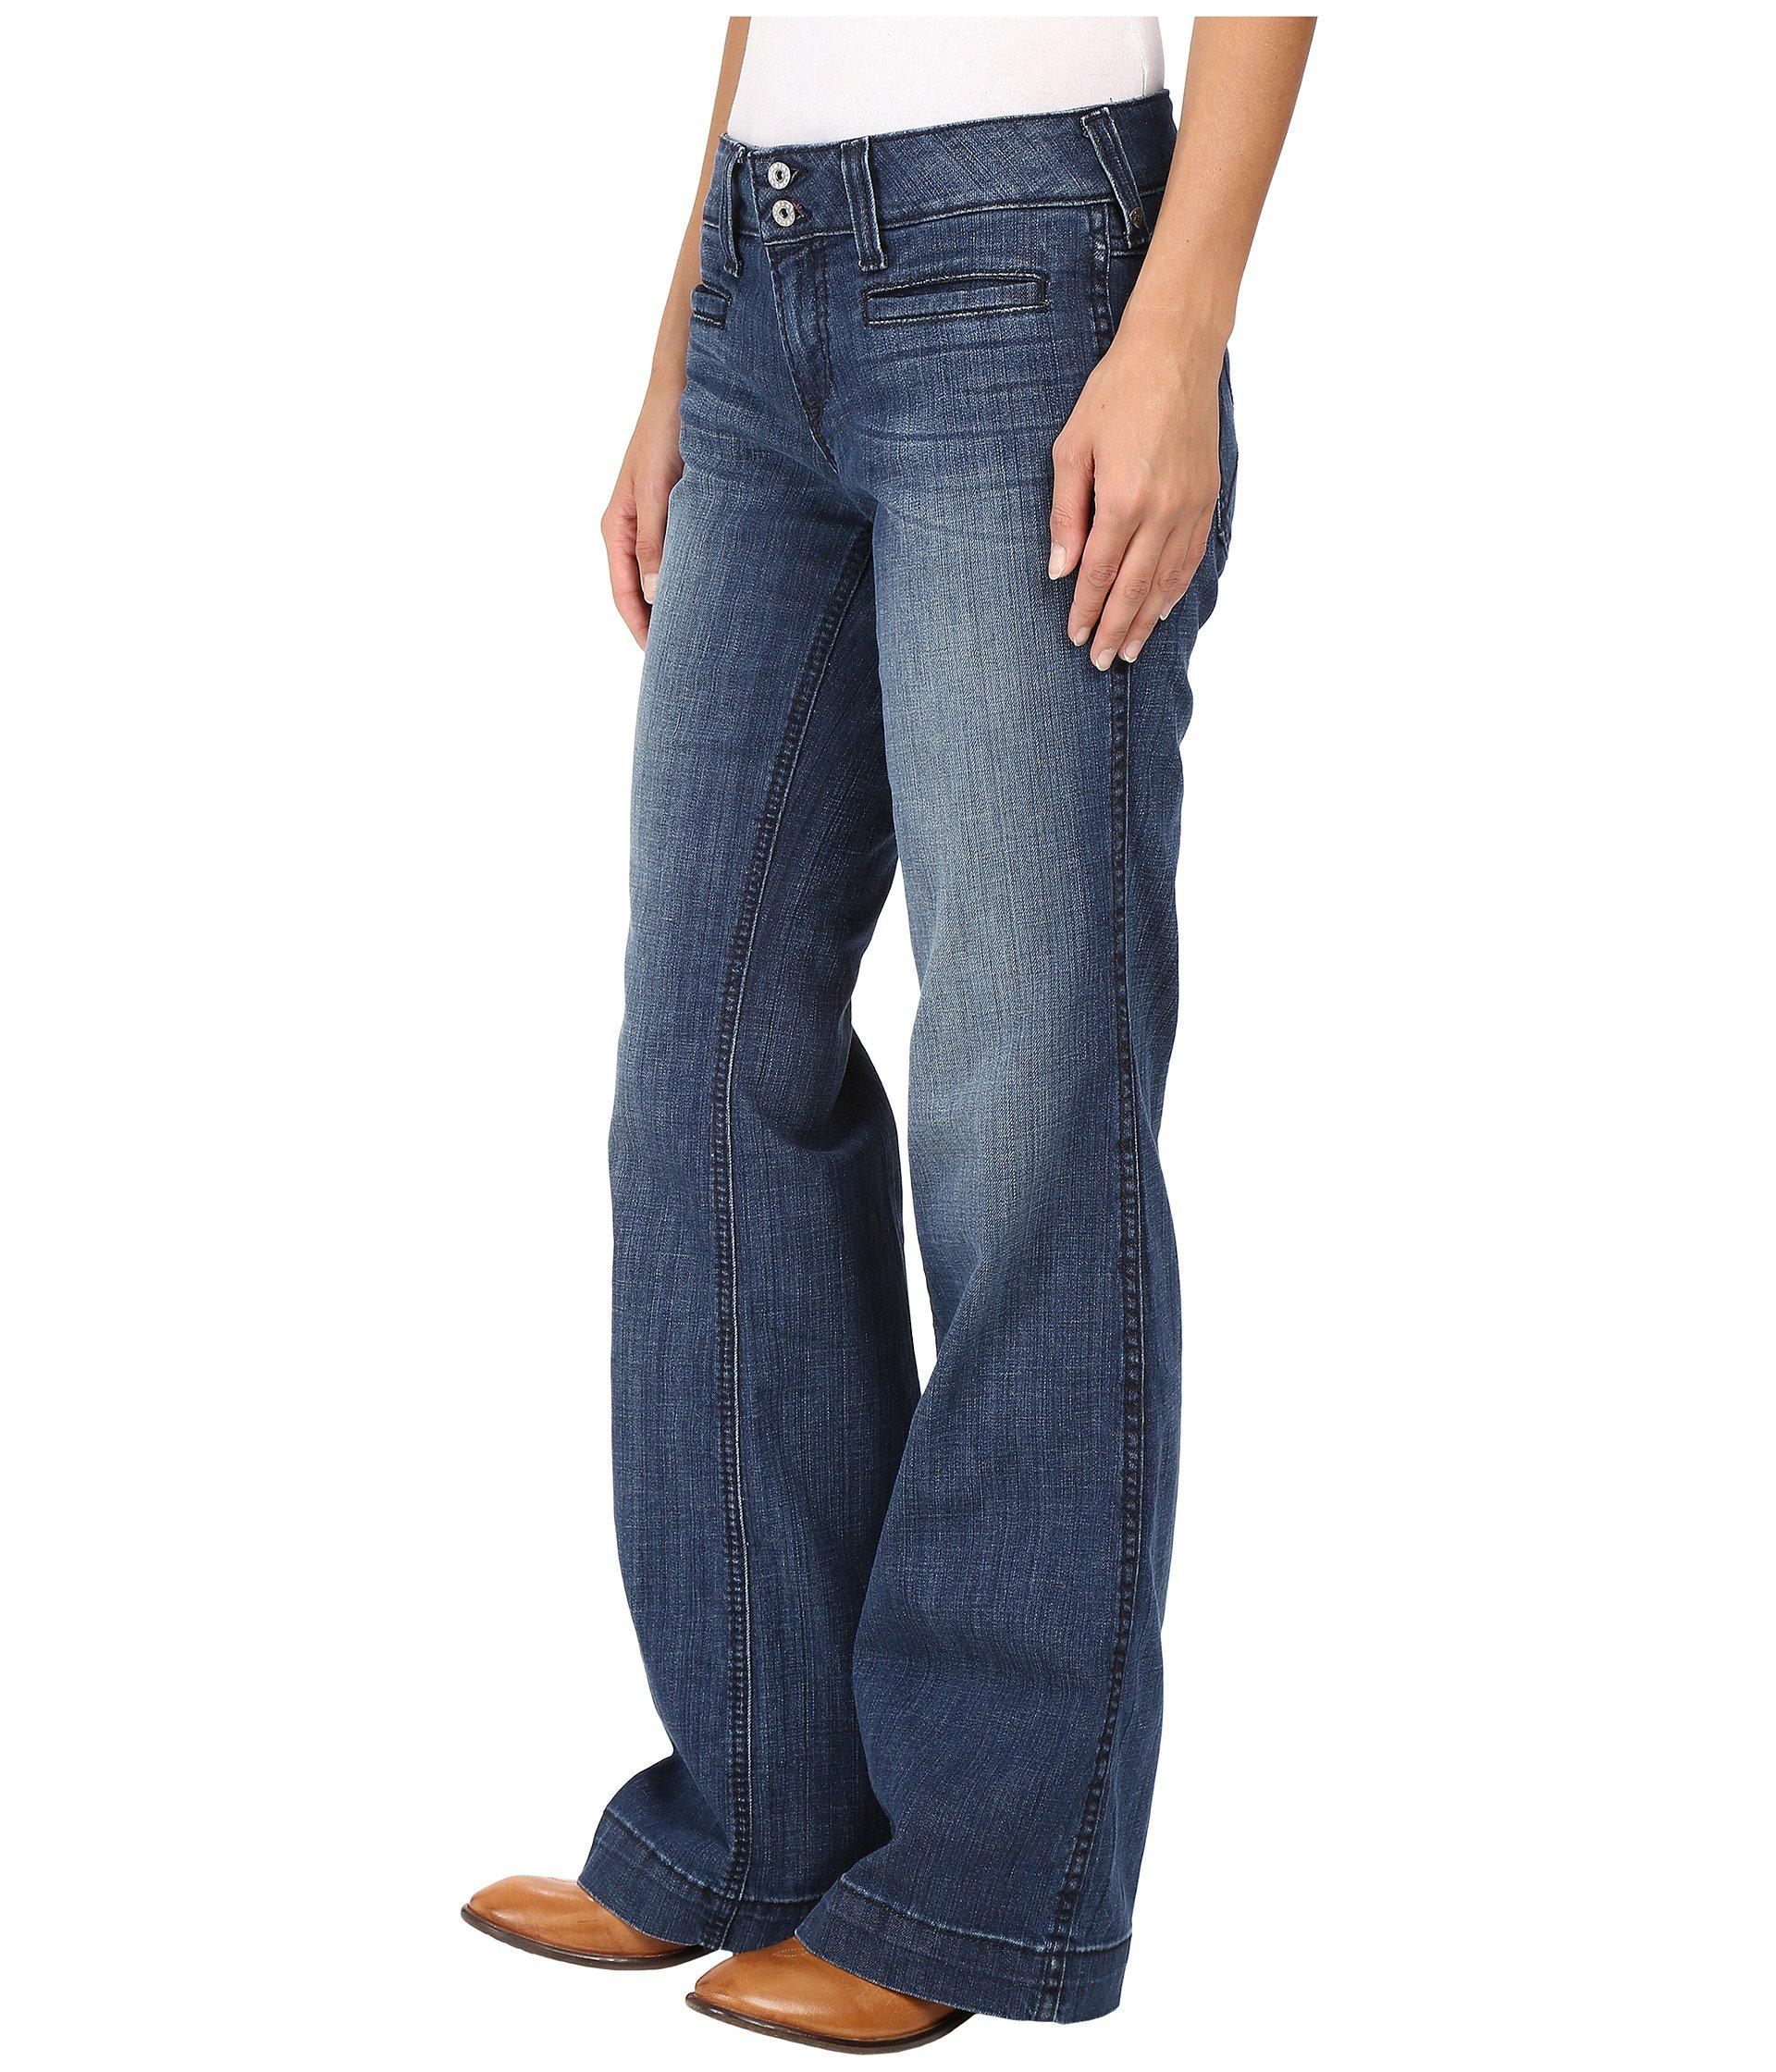 e99393de4b2e4 Lyst - Ariat Trouser Ella Jeans In Bluebell (bluebell) Women s Jeans in  Blue - Save 13%